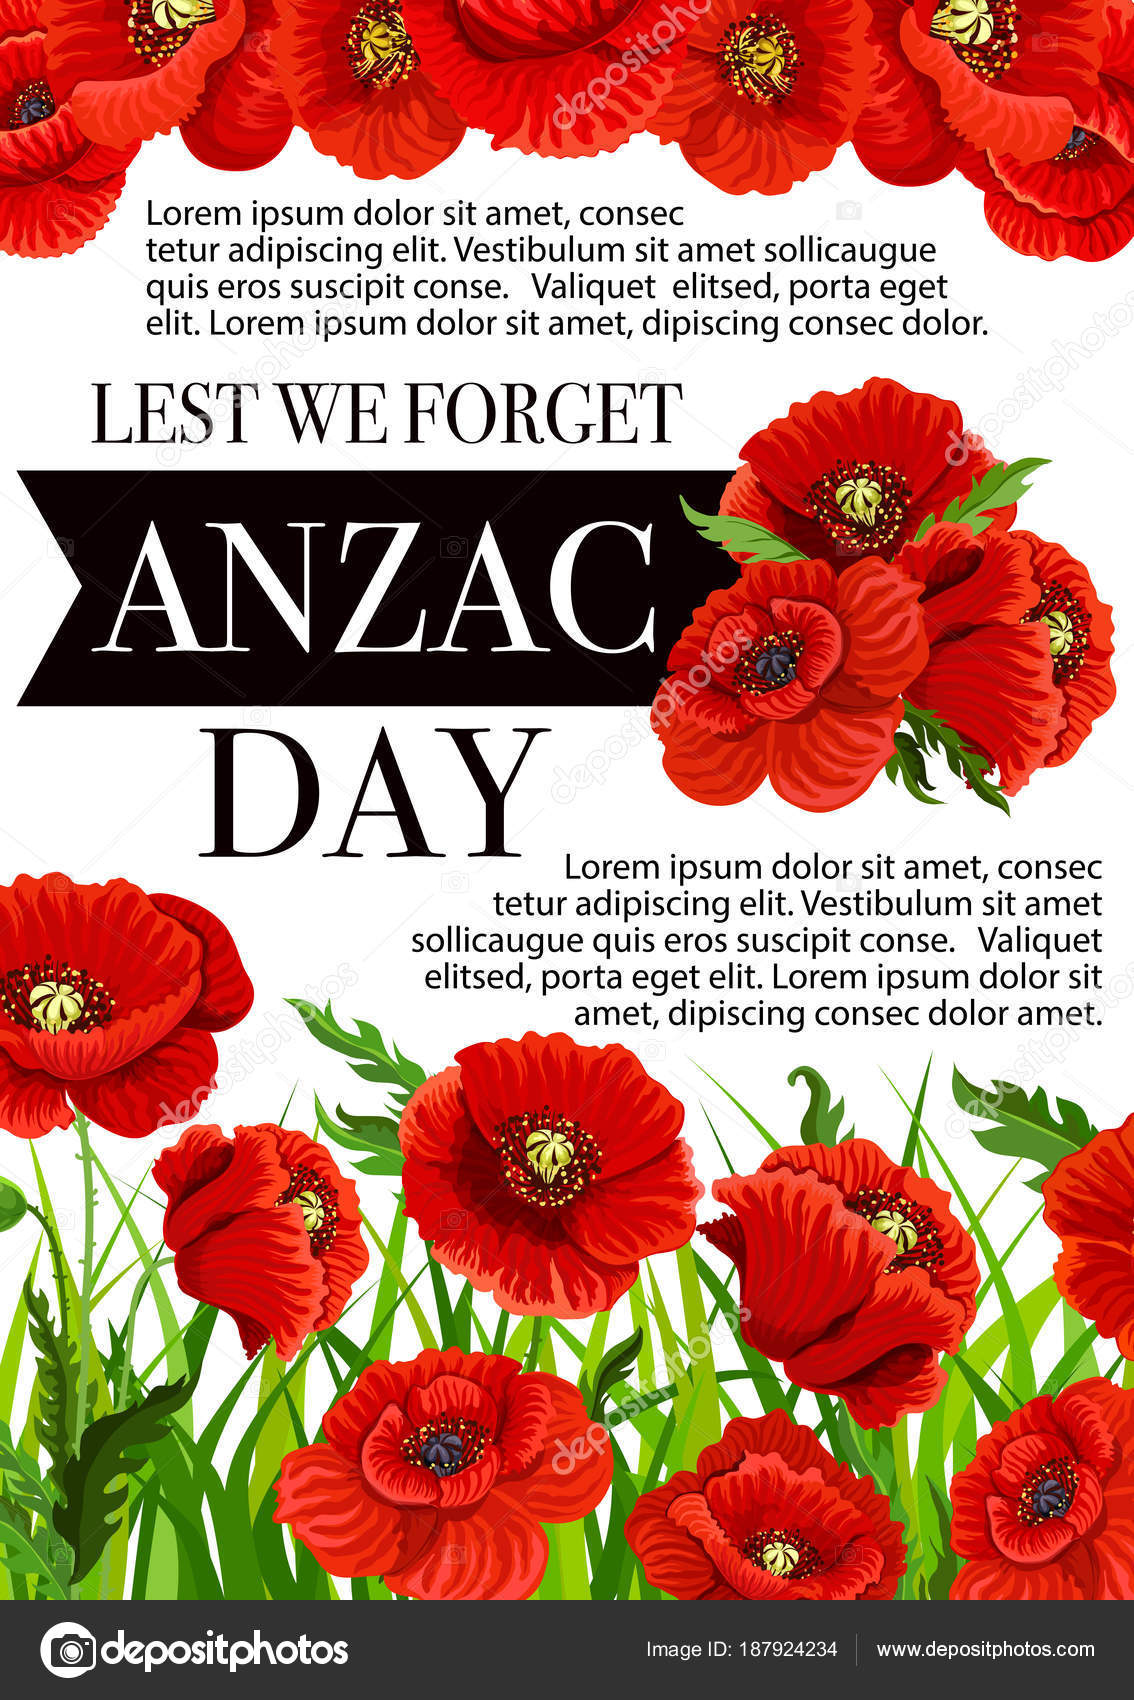 Anzac day australian vector lest we forget poster stock vector vector 25 april australian and new zealand holiday poster for war remembrance anniversary of anzac day poppy flowers symbols vector by seamartini mightylinksfo